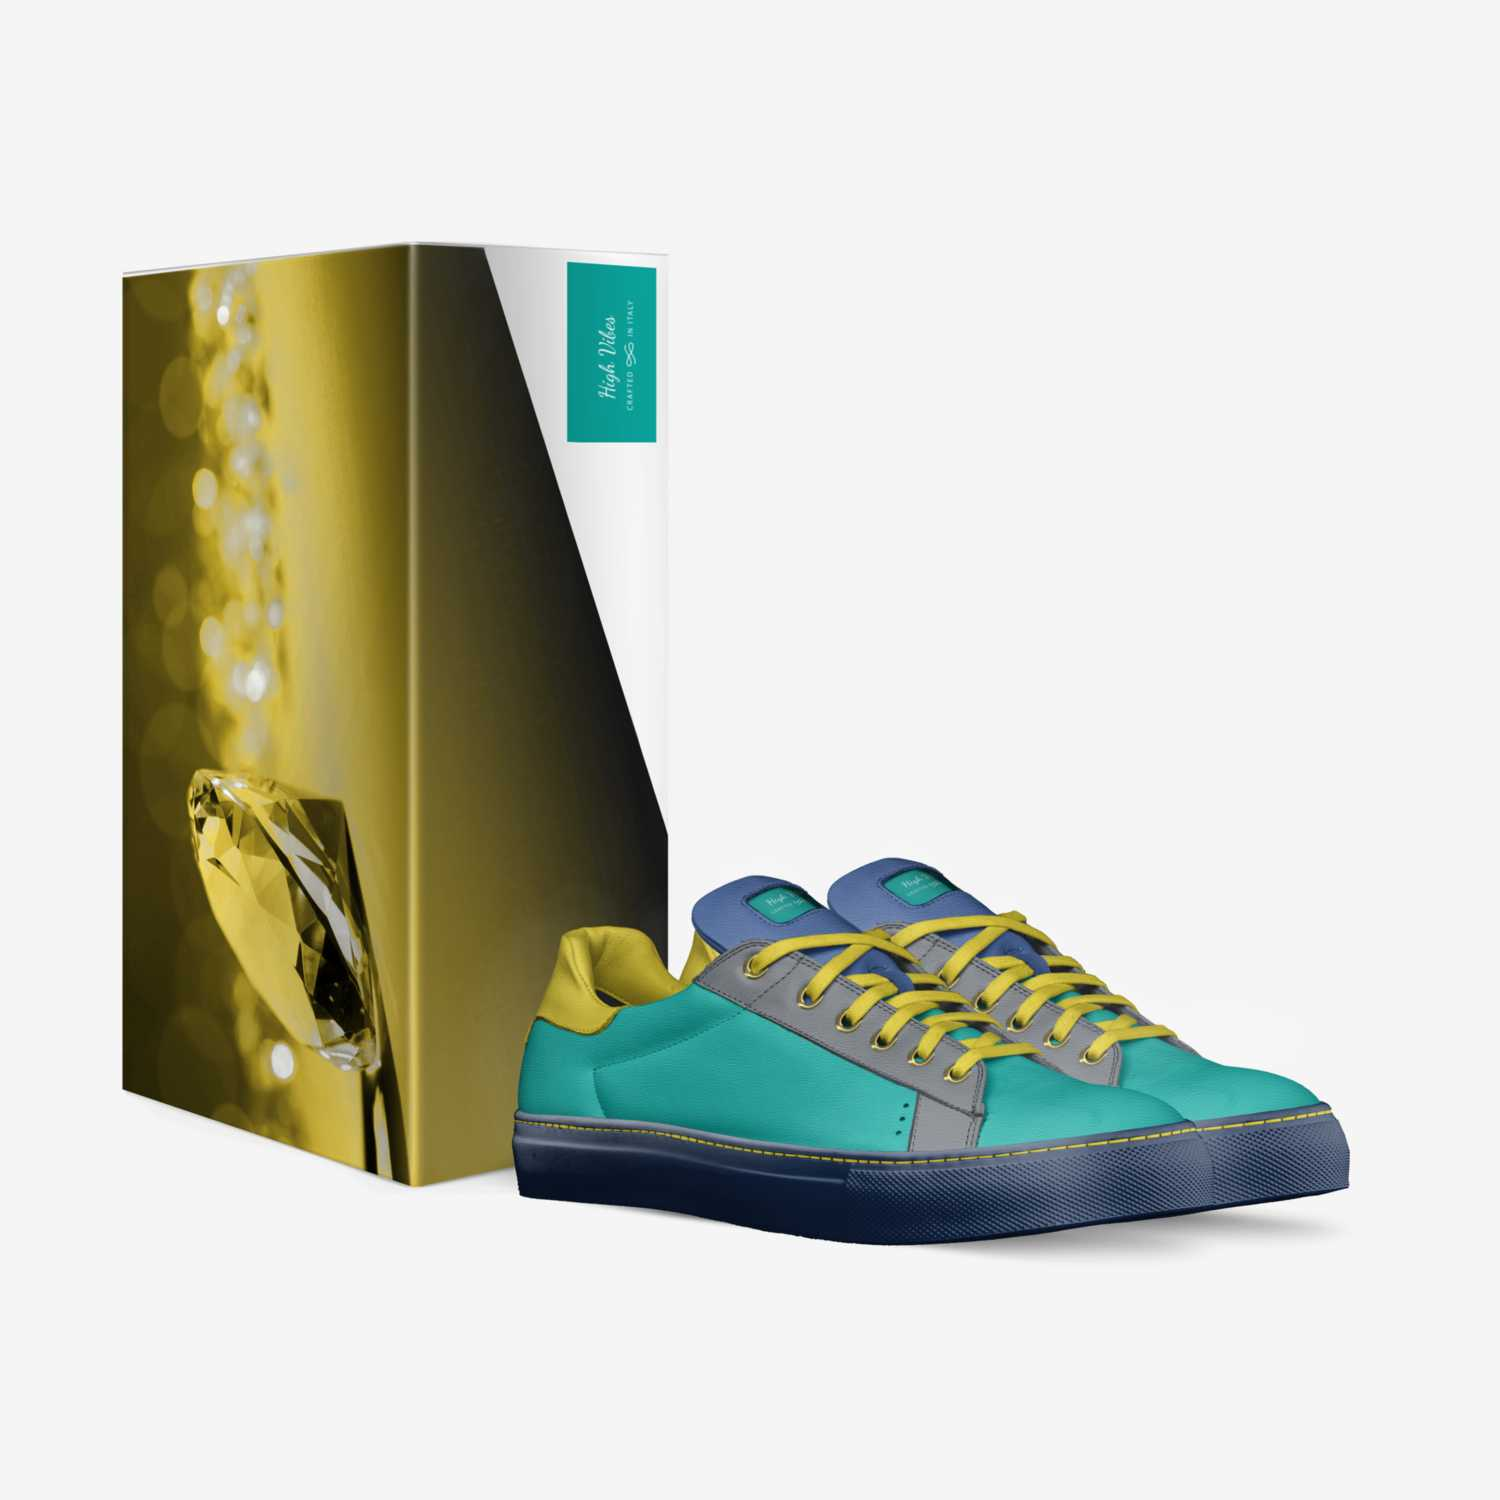 High Vibes  custom made in Italy shoes by Nikita Davis | Box view